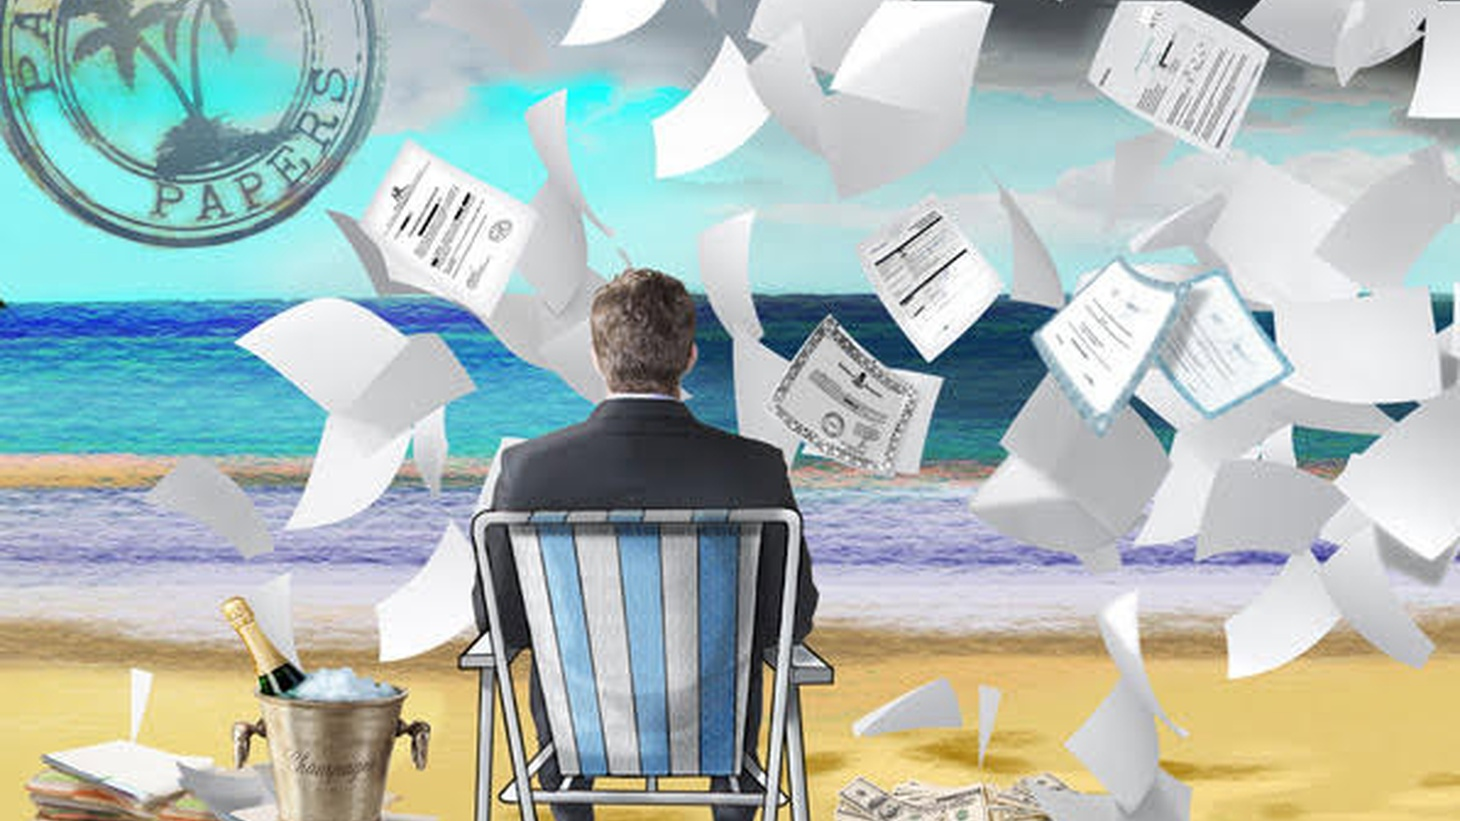 Reveal journalists teamed up with ICIJ for a new bombshell: The Paradise Papers. This time around, the action is centered on more than 13 million confidential files leaked to Suddeutsche Zeitung and shared with the ICIJ's global team of more than 300 journalists.